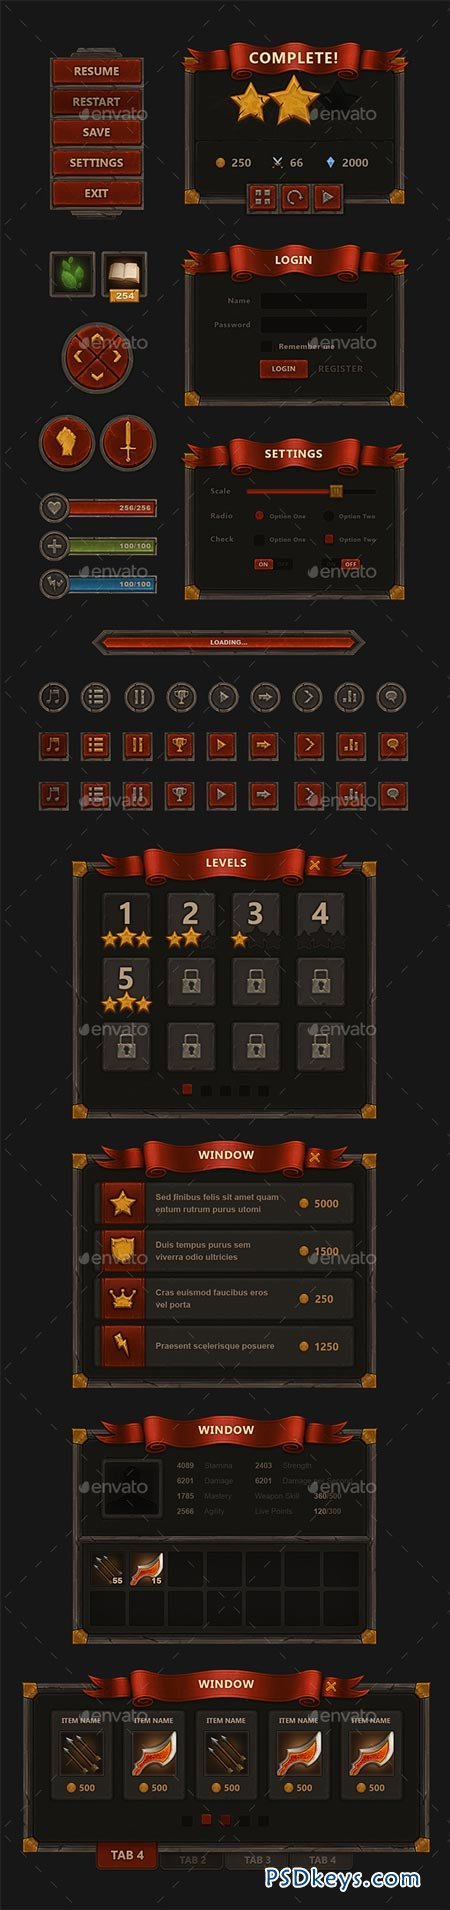 Fantasy Mobile Game Interface 9009432